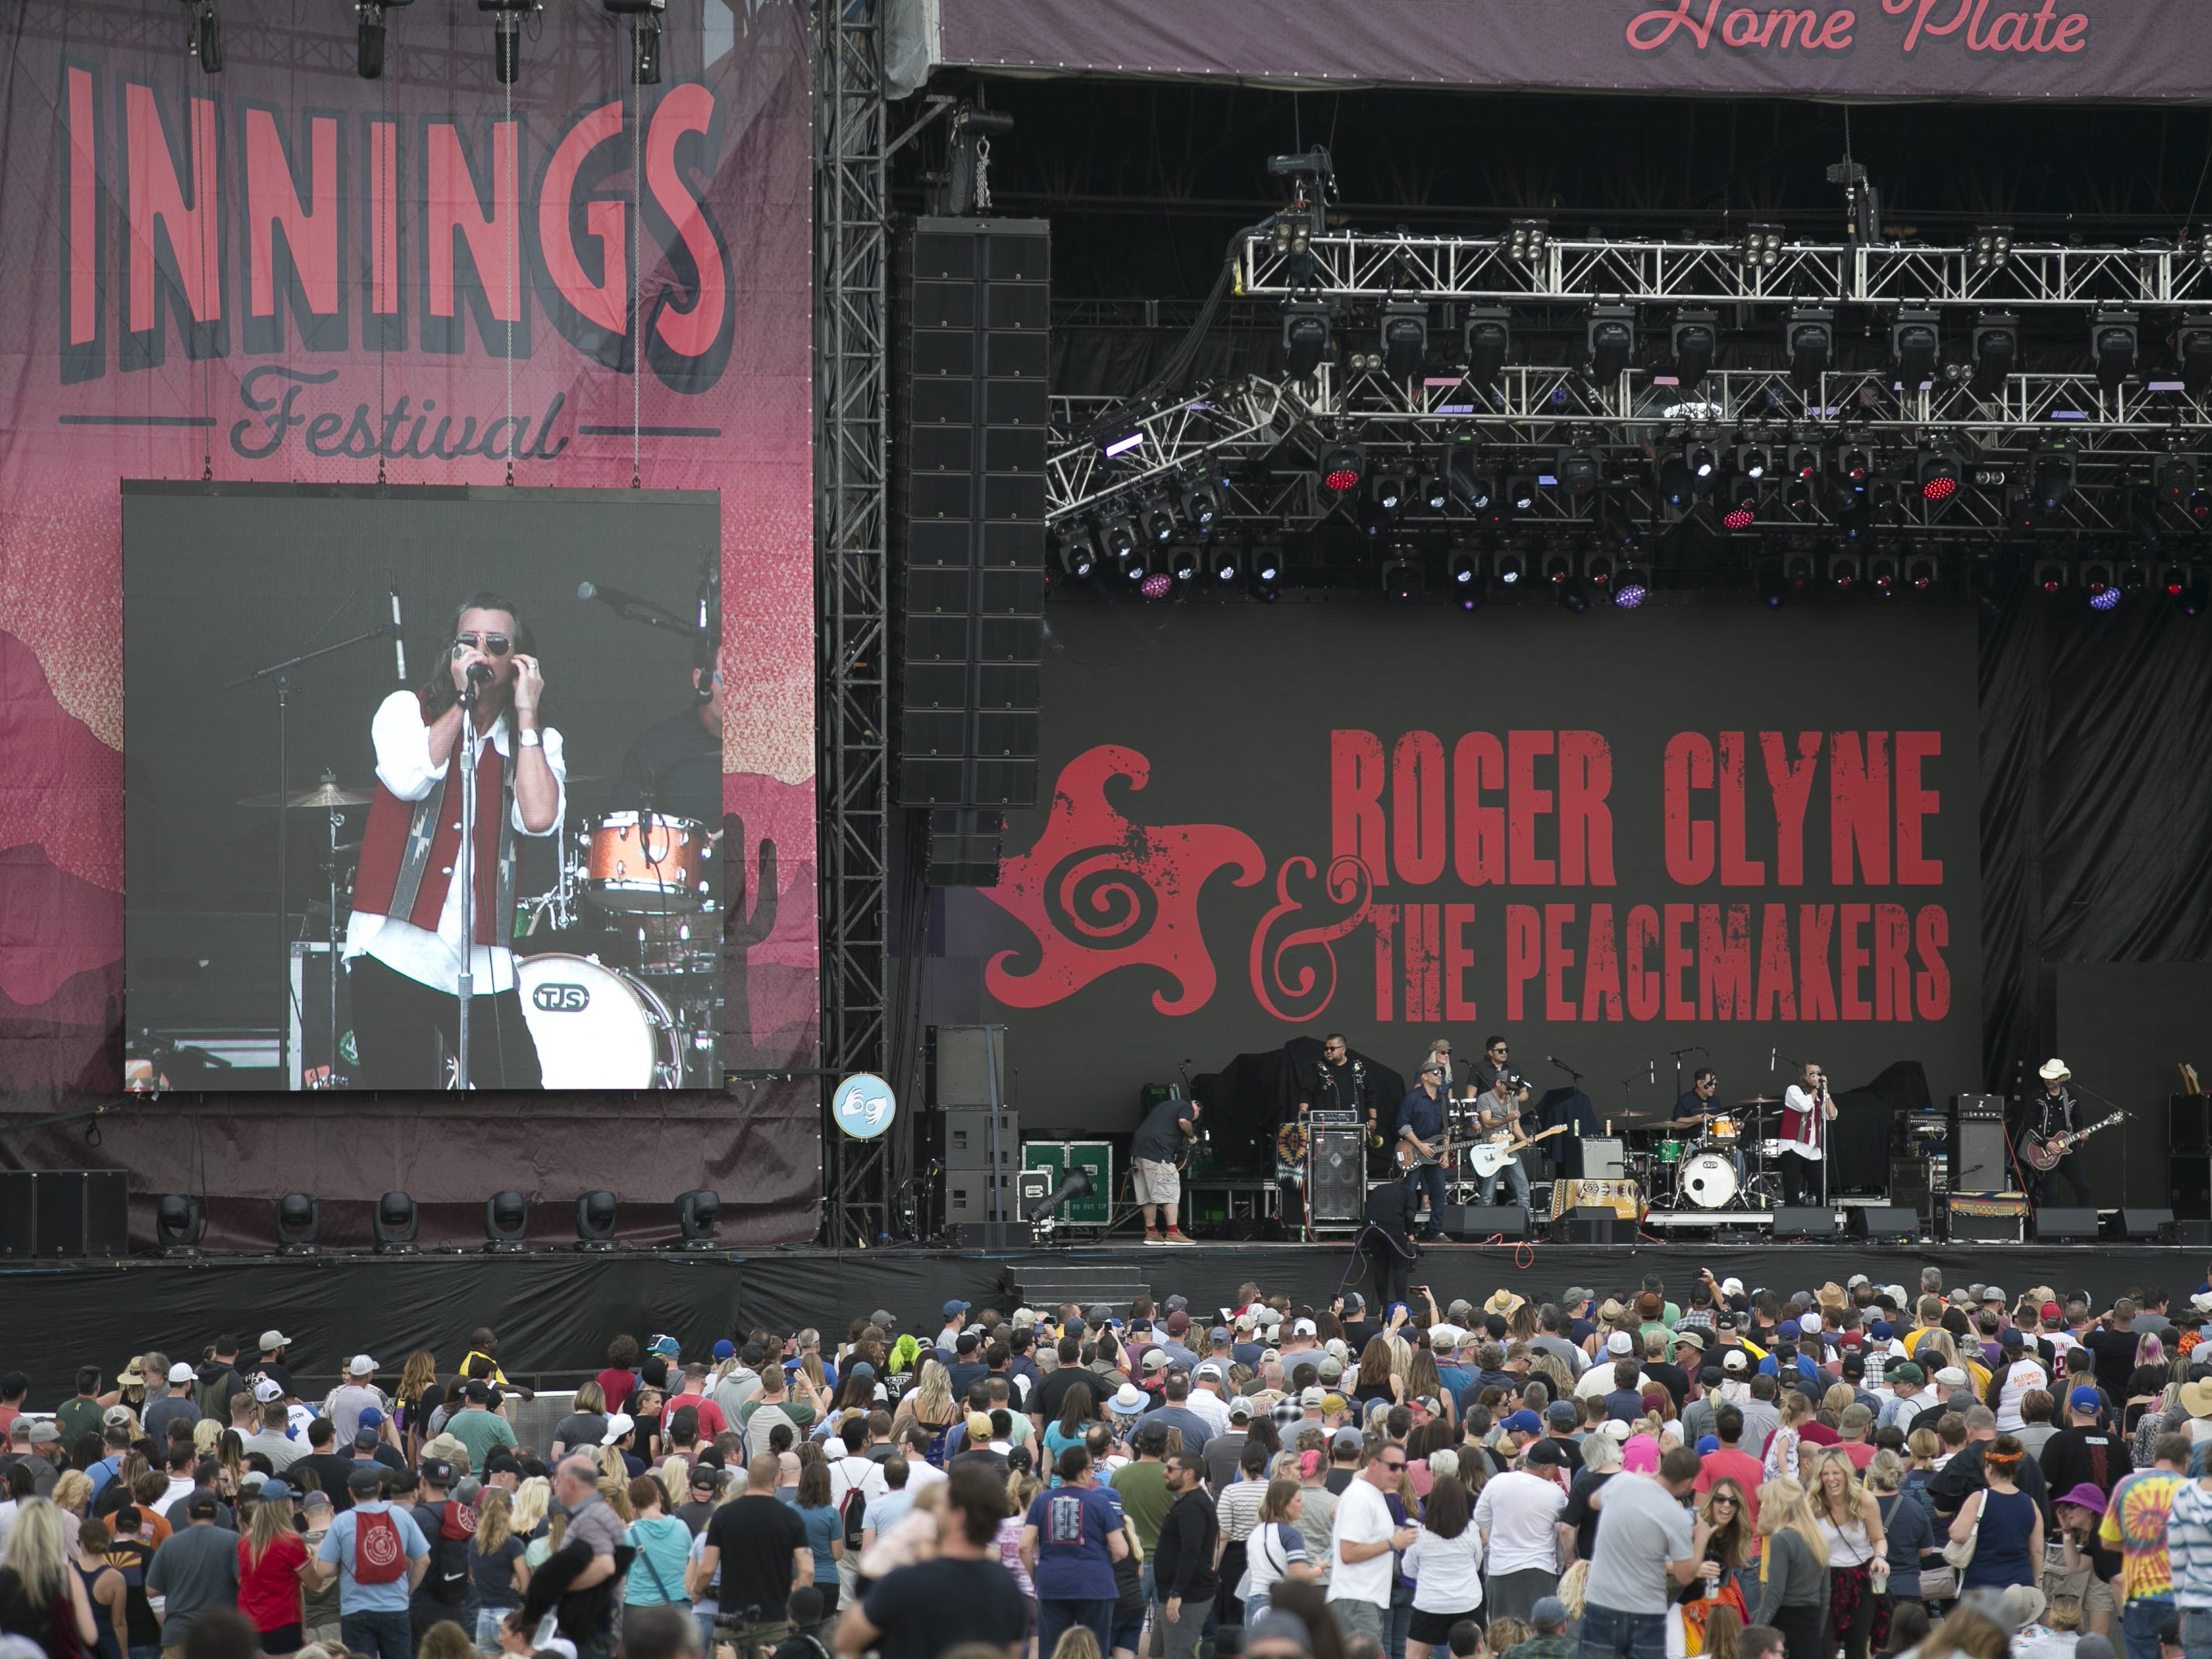 Roger Clyne and the Peacemakers perform at the Innings Festival at Tempe Beach Park in Ariz. on Saturday, March 2, 2019.